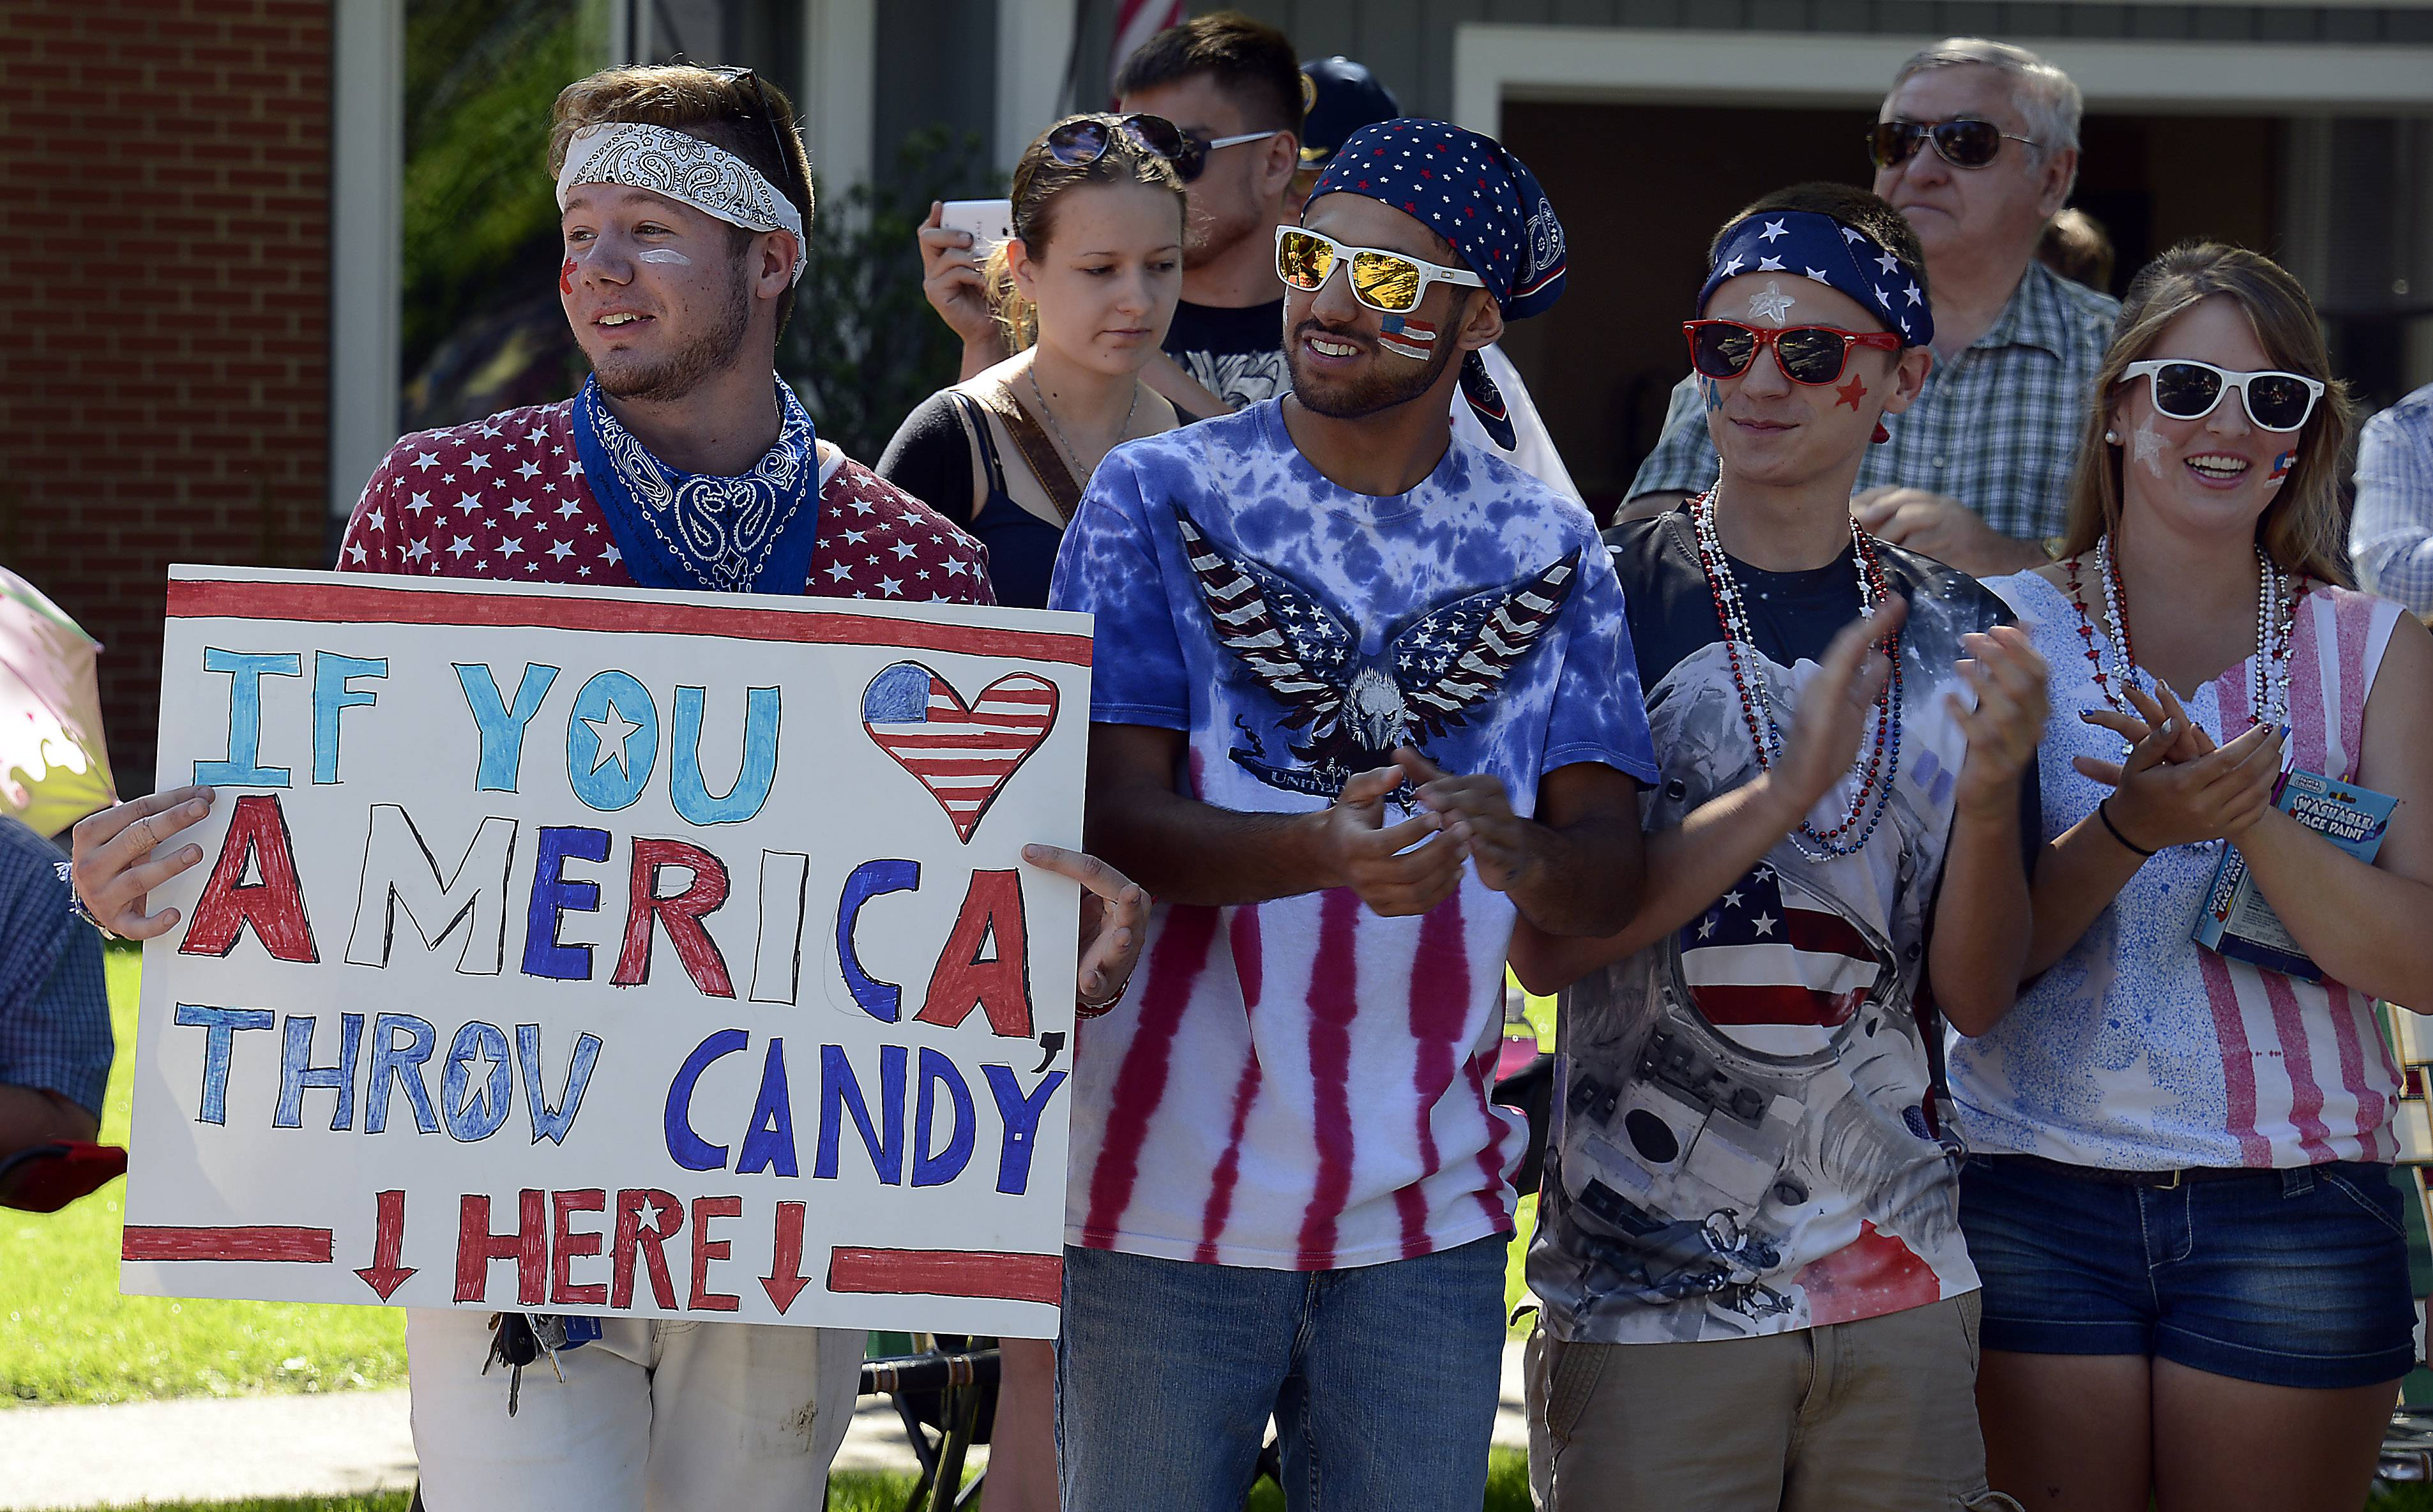 Michael Johnson and Jake Priester both of Prospect Heights try their best to get candy at the Arlington Heights 4th of July parade on Friday.